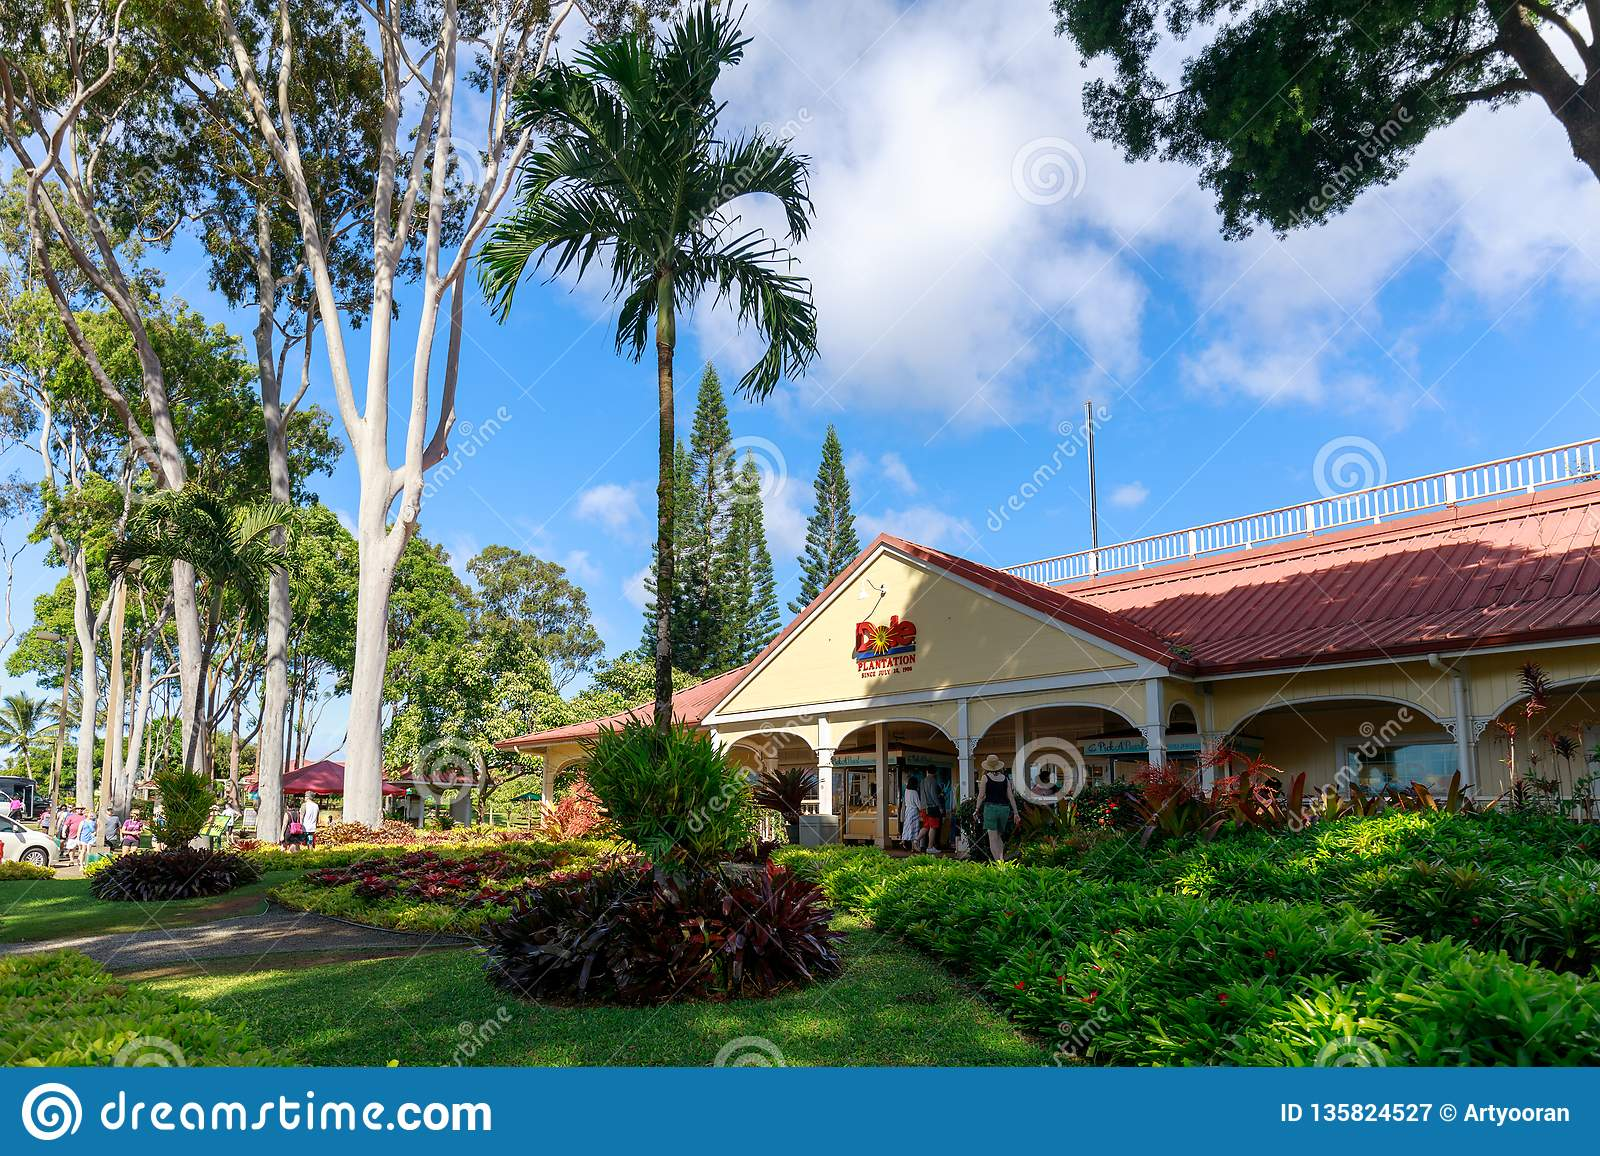 191 Dole Plantation Photos Free Royalty Free Stock Photos From Dreamstime